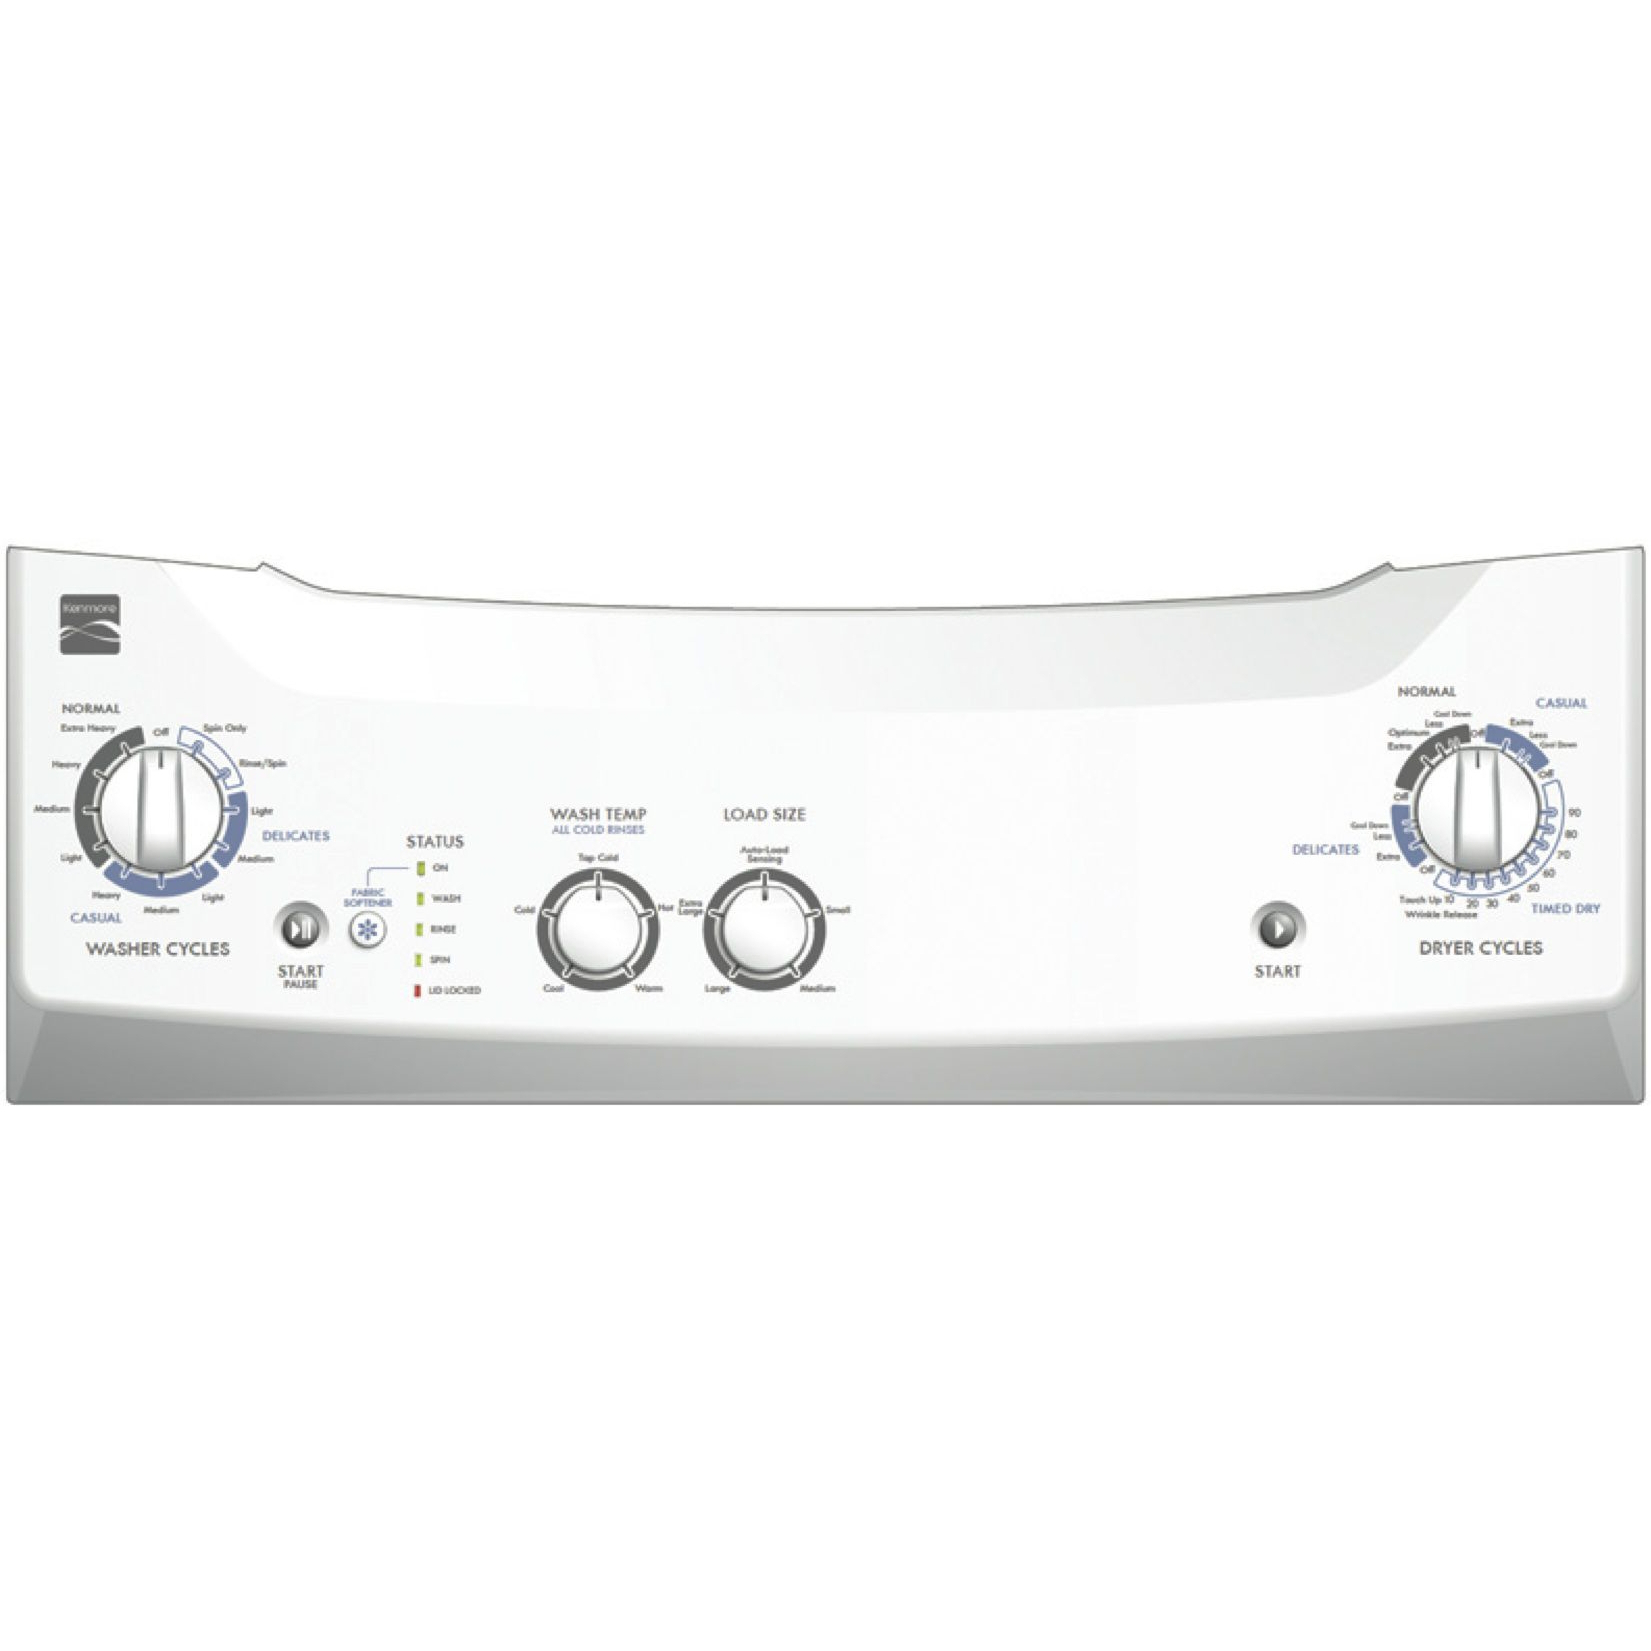 "Kenmore 27"" Laundry Center w/ Electric Dryer - White"